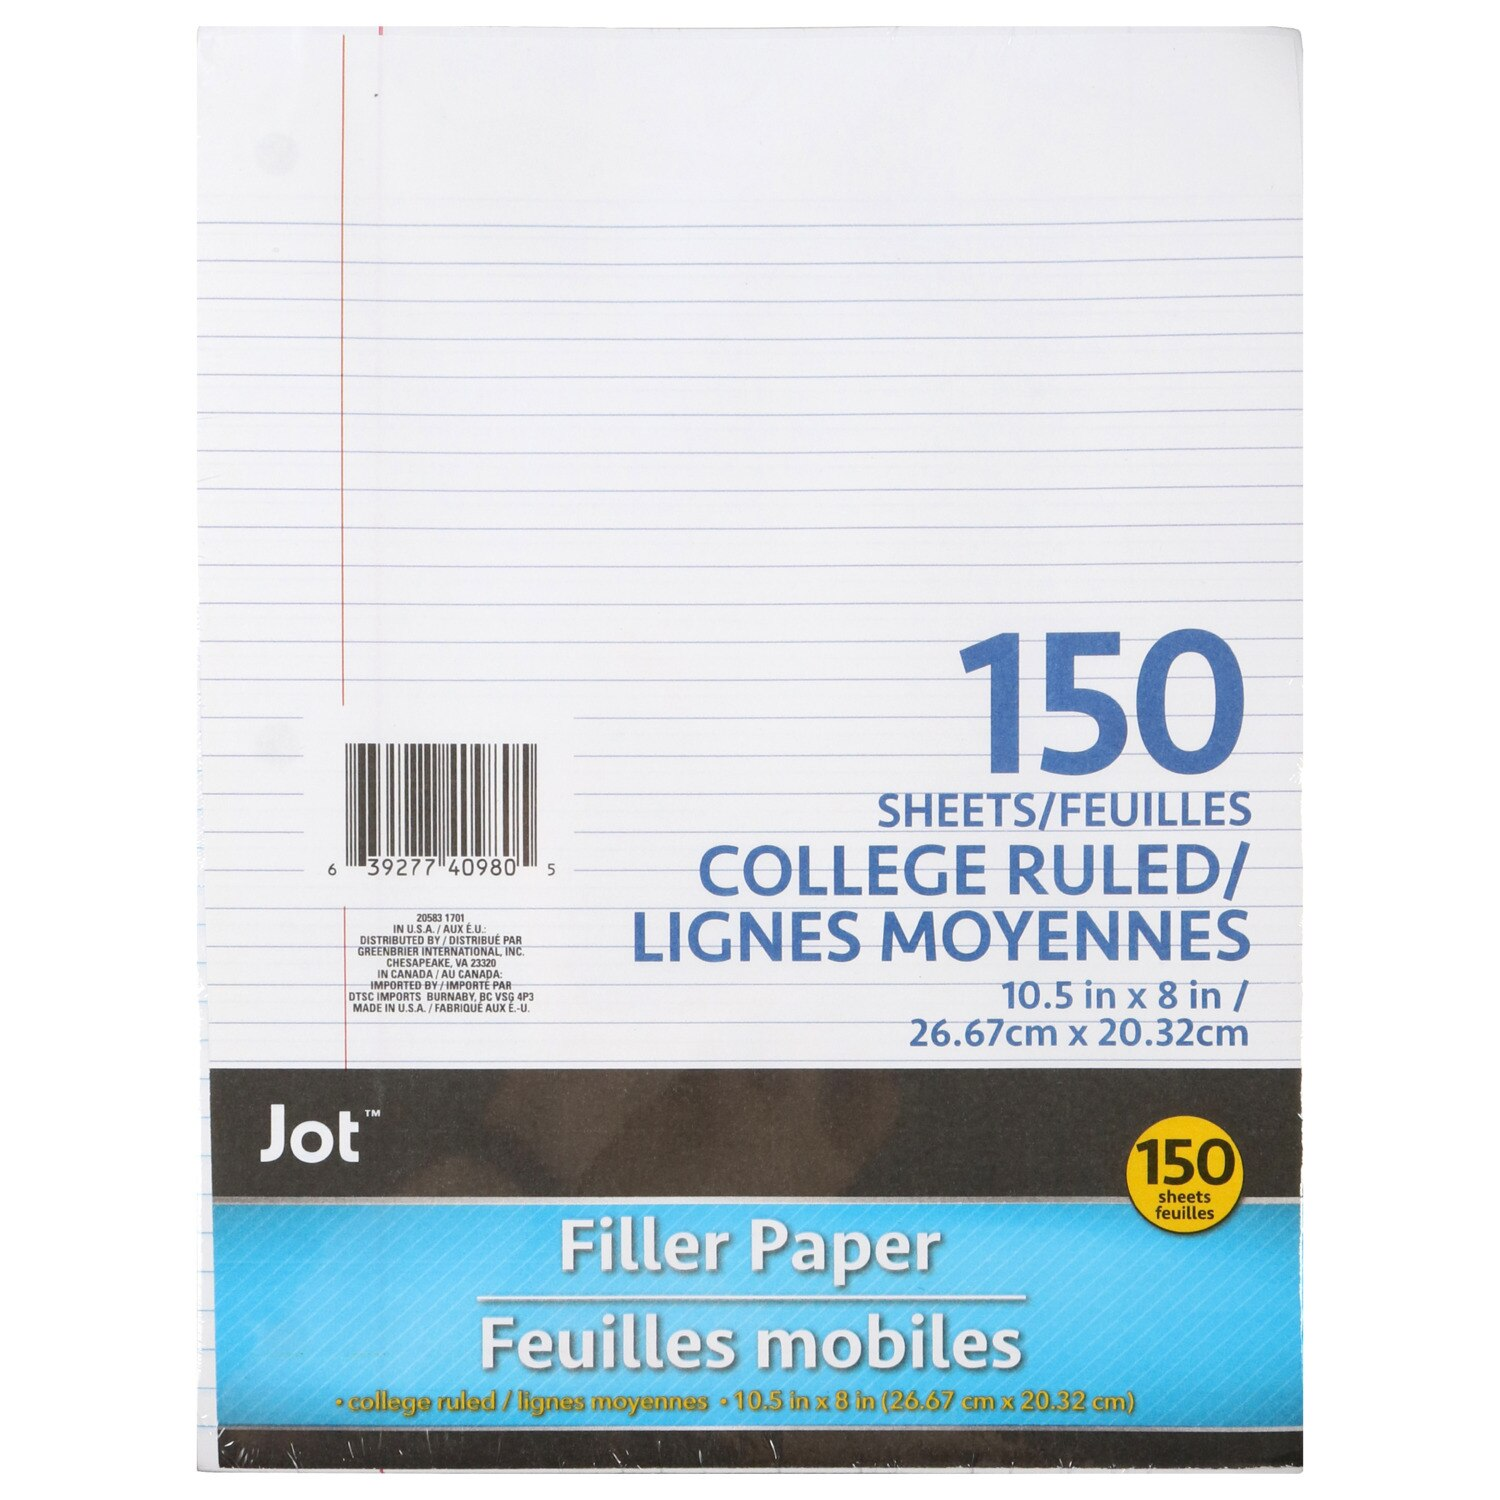 Filler Paper Packs Wide Ruled College Ruled Sheets Kids School Supplies Writing